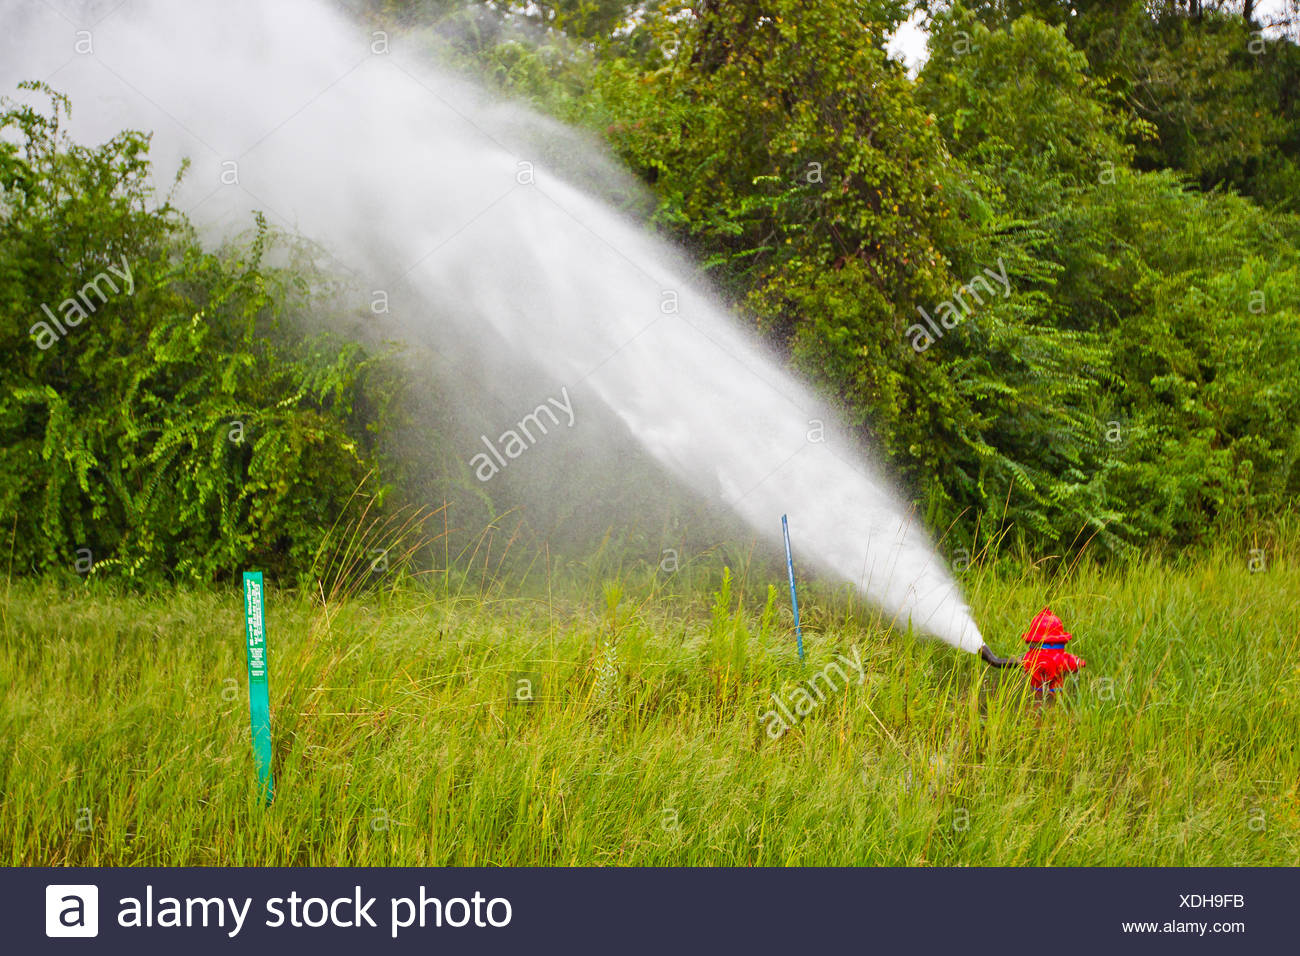 A fire hydrant releases water pressure from heavy rains due to Hurricane Isaac. - Stock Image